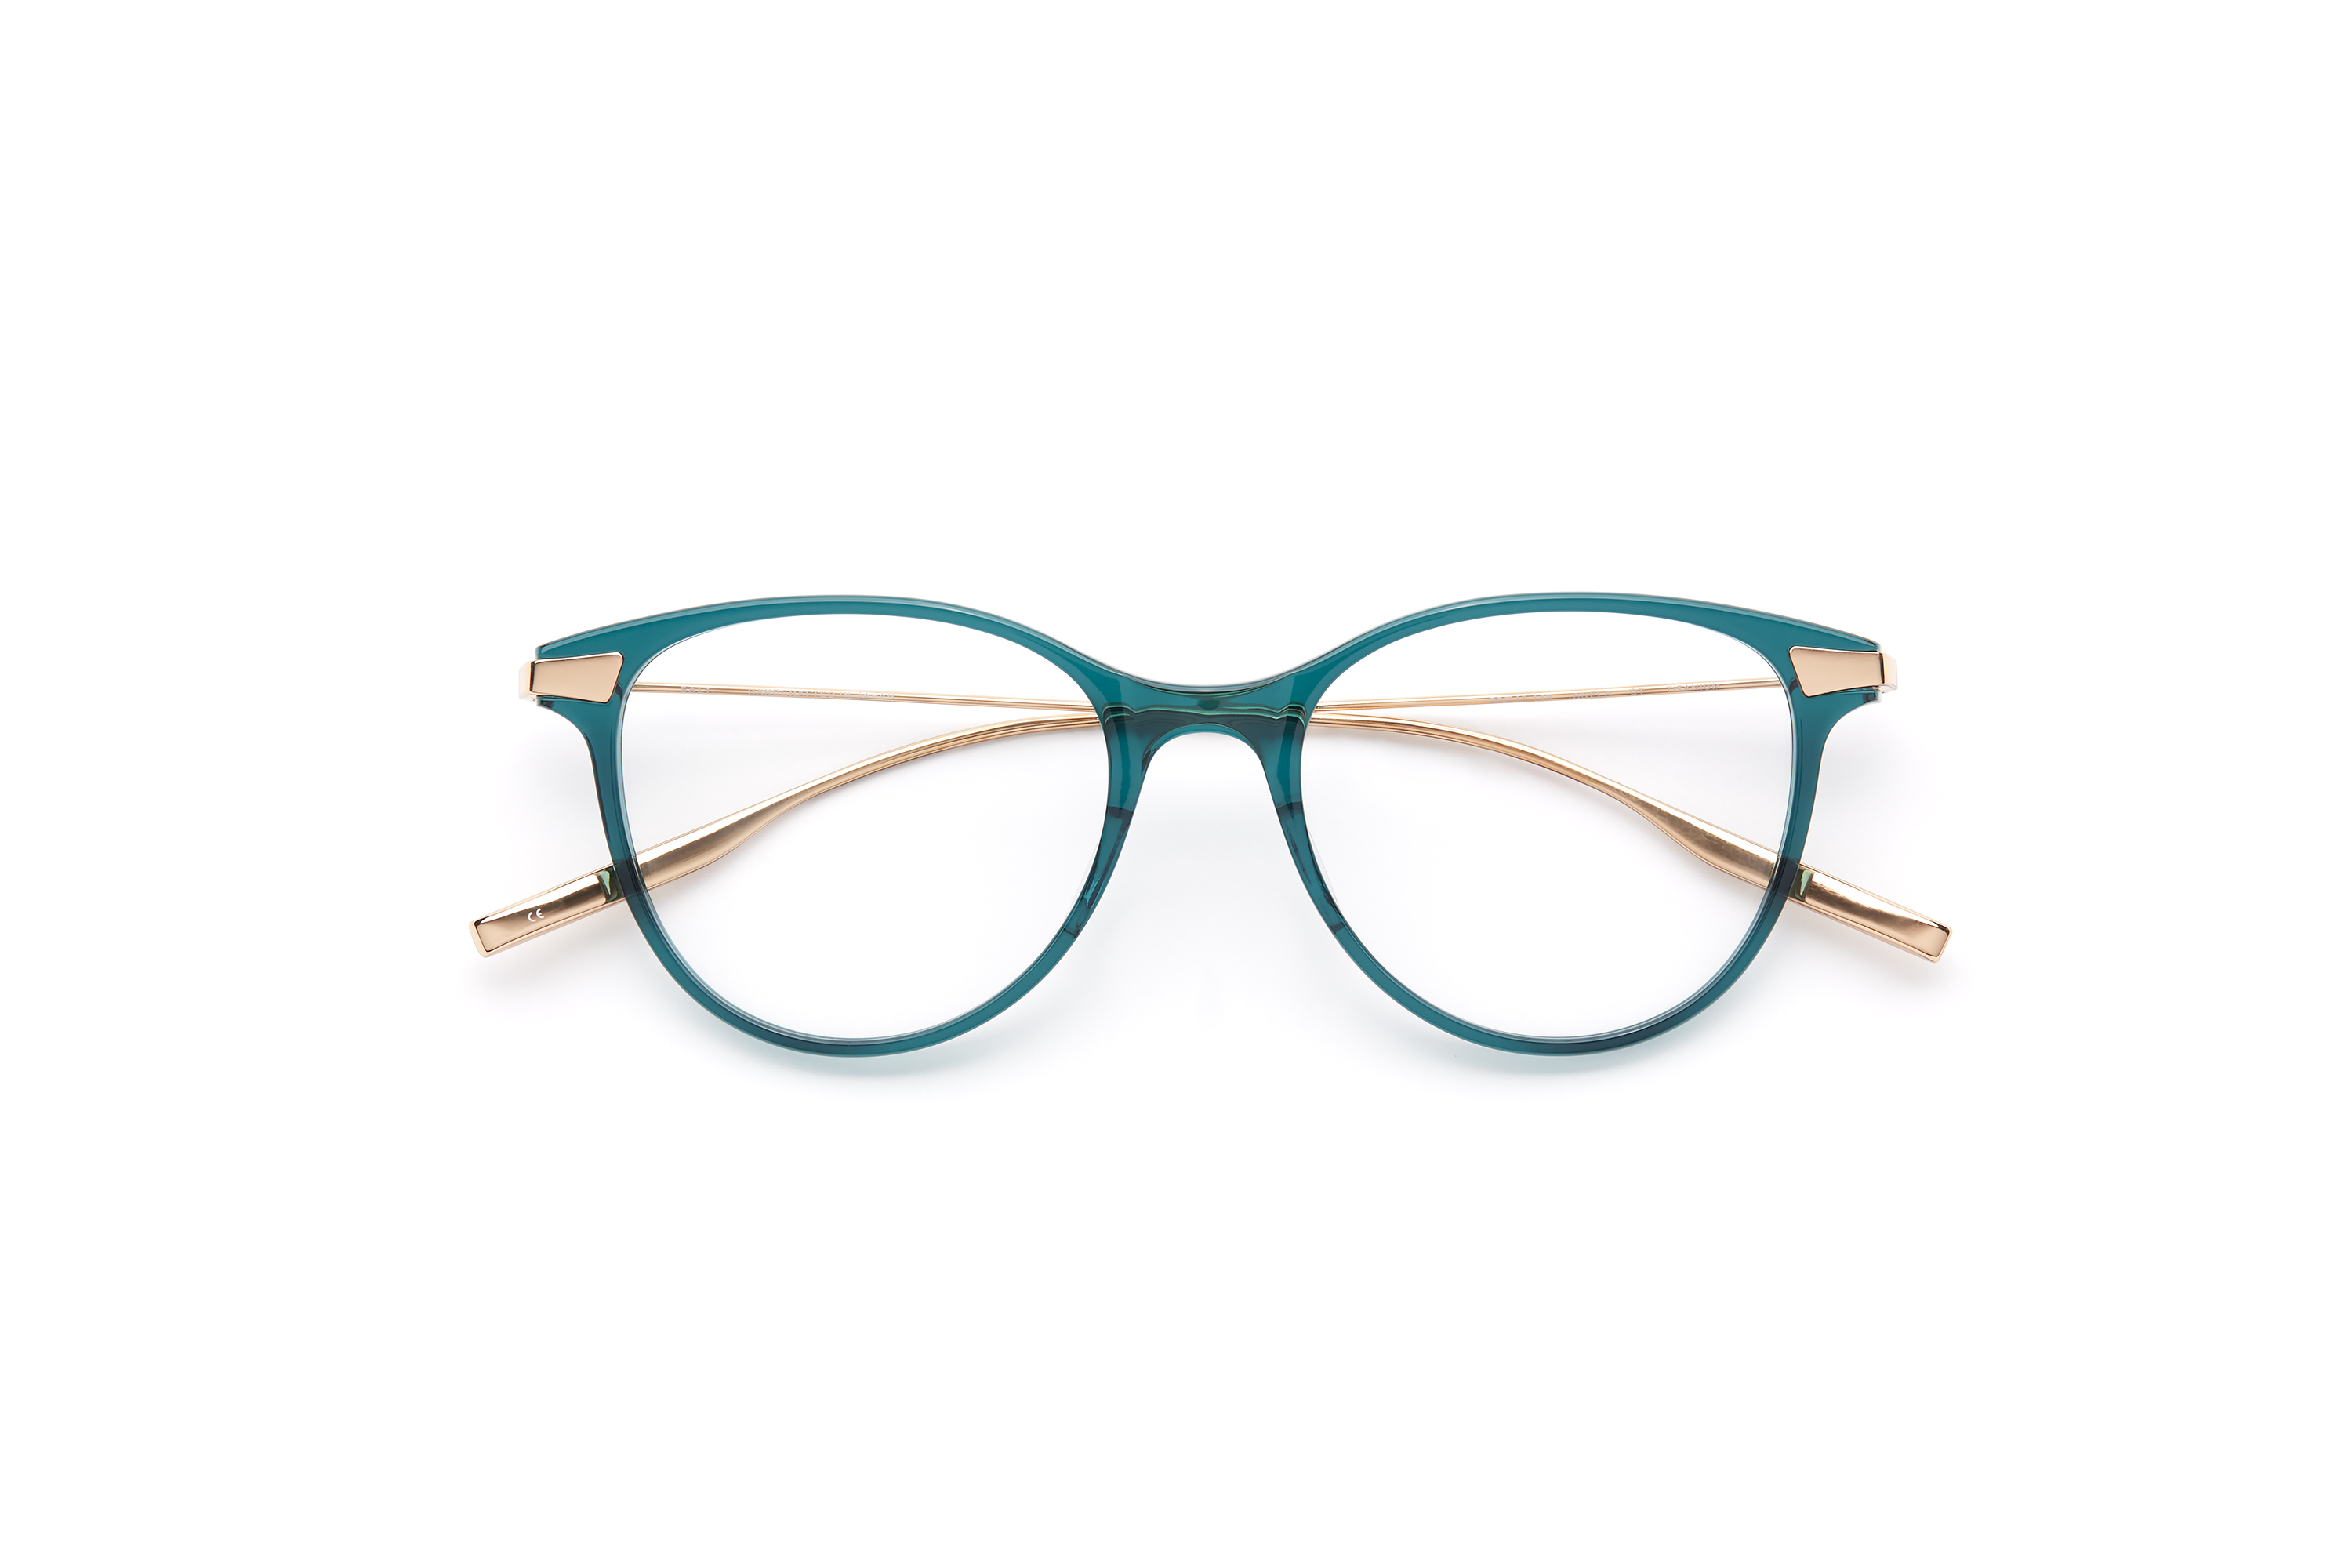 SALT. | frame: ANELA in Teal/Honey Gold